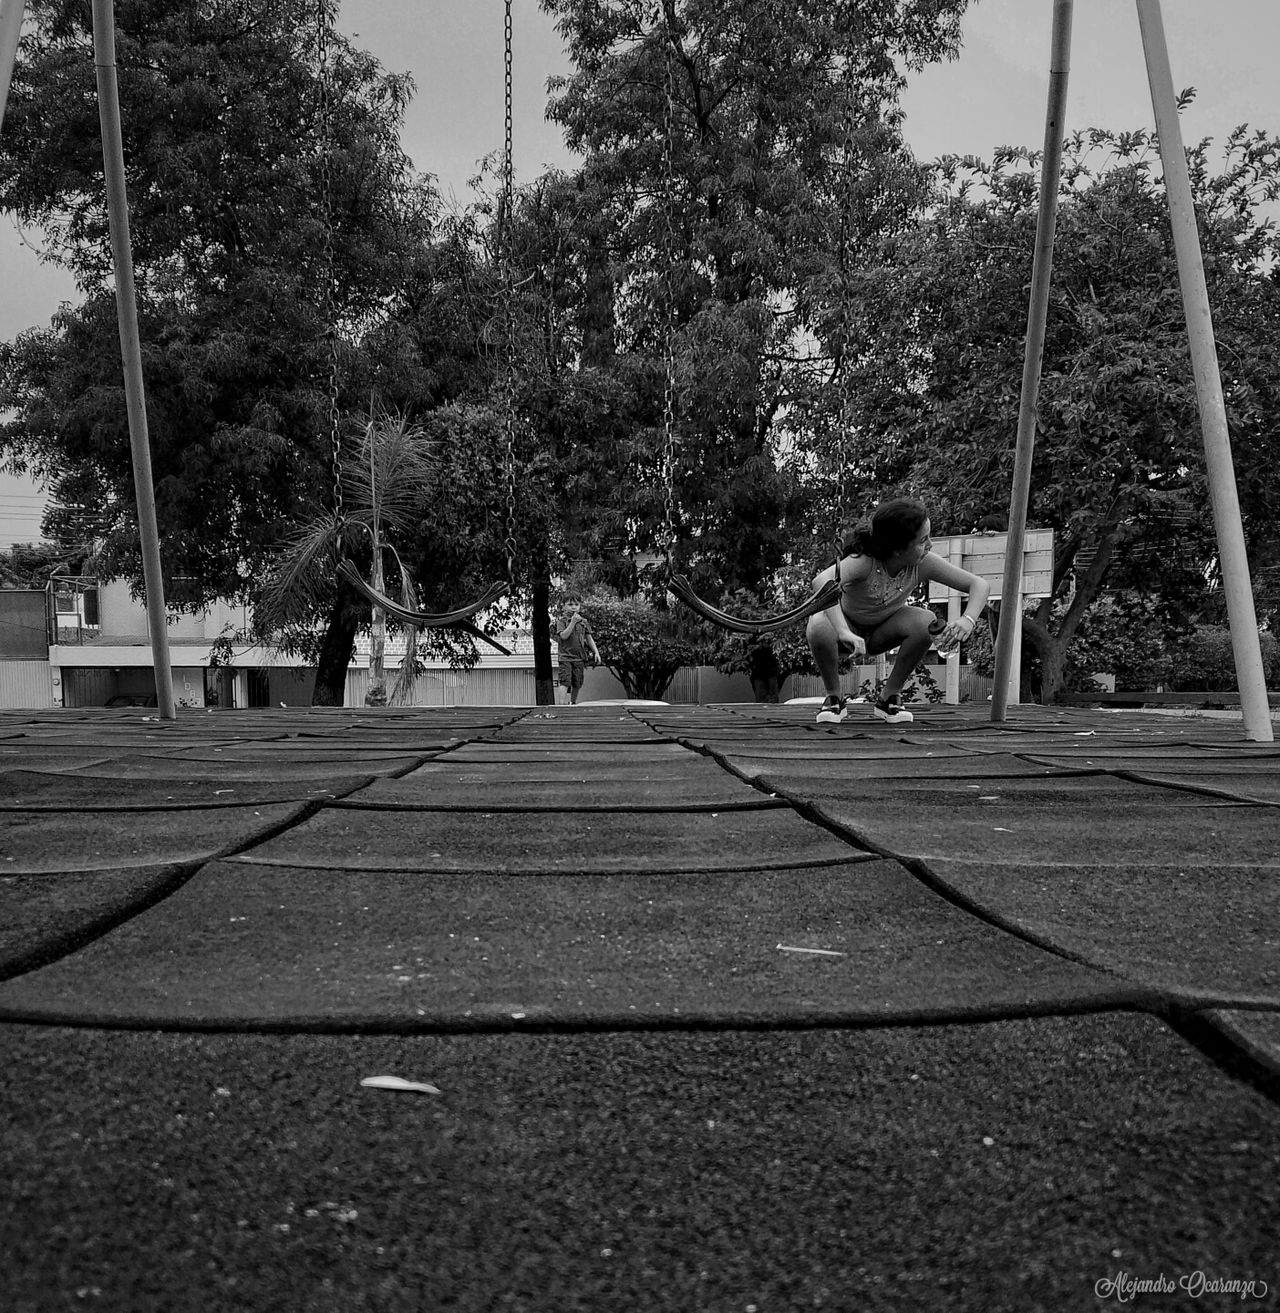 Años Maravillosos Children Only Kids Kid Boys Real People Urban Street Photo Blake_and_white Blackandwhitephotography Blsckandwhite Photographie  Black And White Photography Photographer Guadalajara Guadalajara Jalisco Photos Black & White Mexico Photography Day B&w One Person First Eyeem Photo People